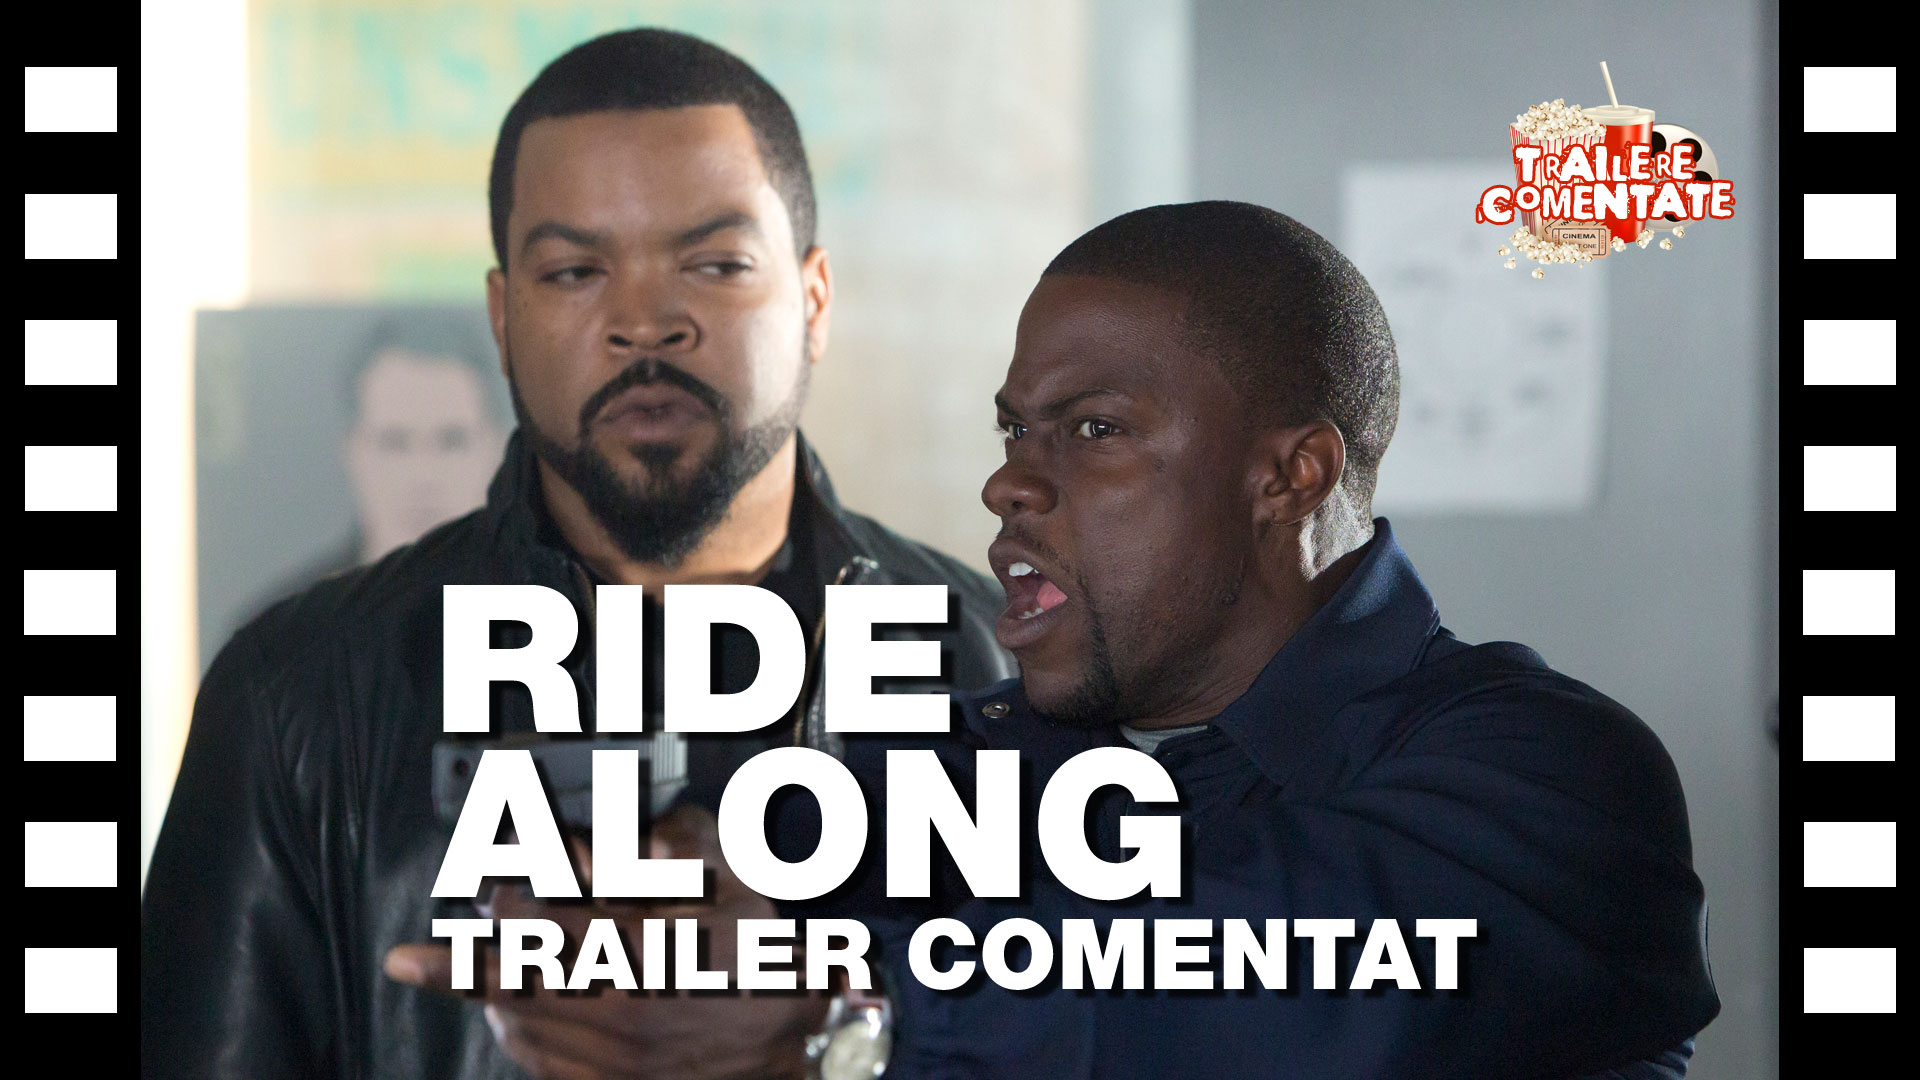 Trailer comentat: Ride Along